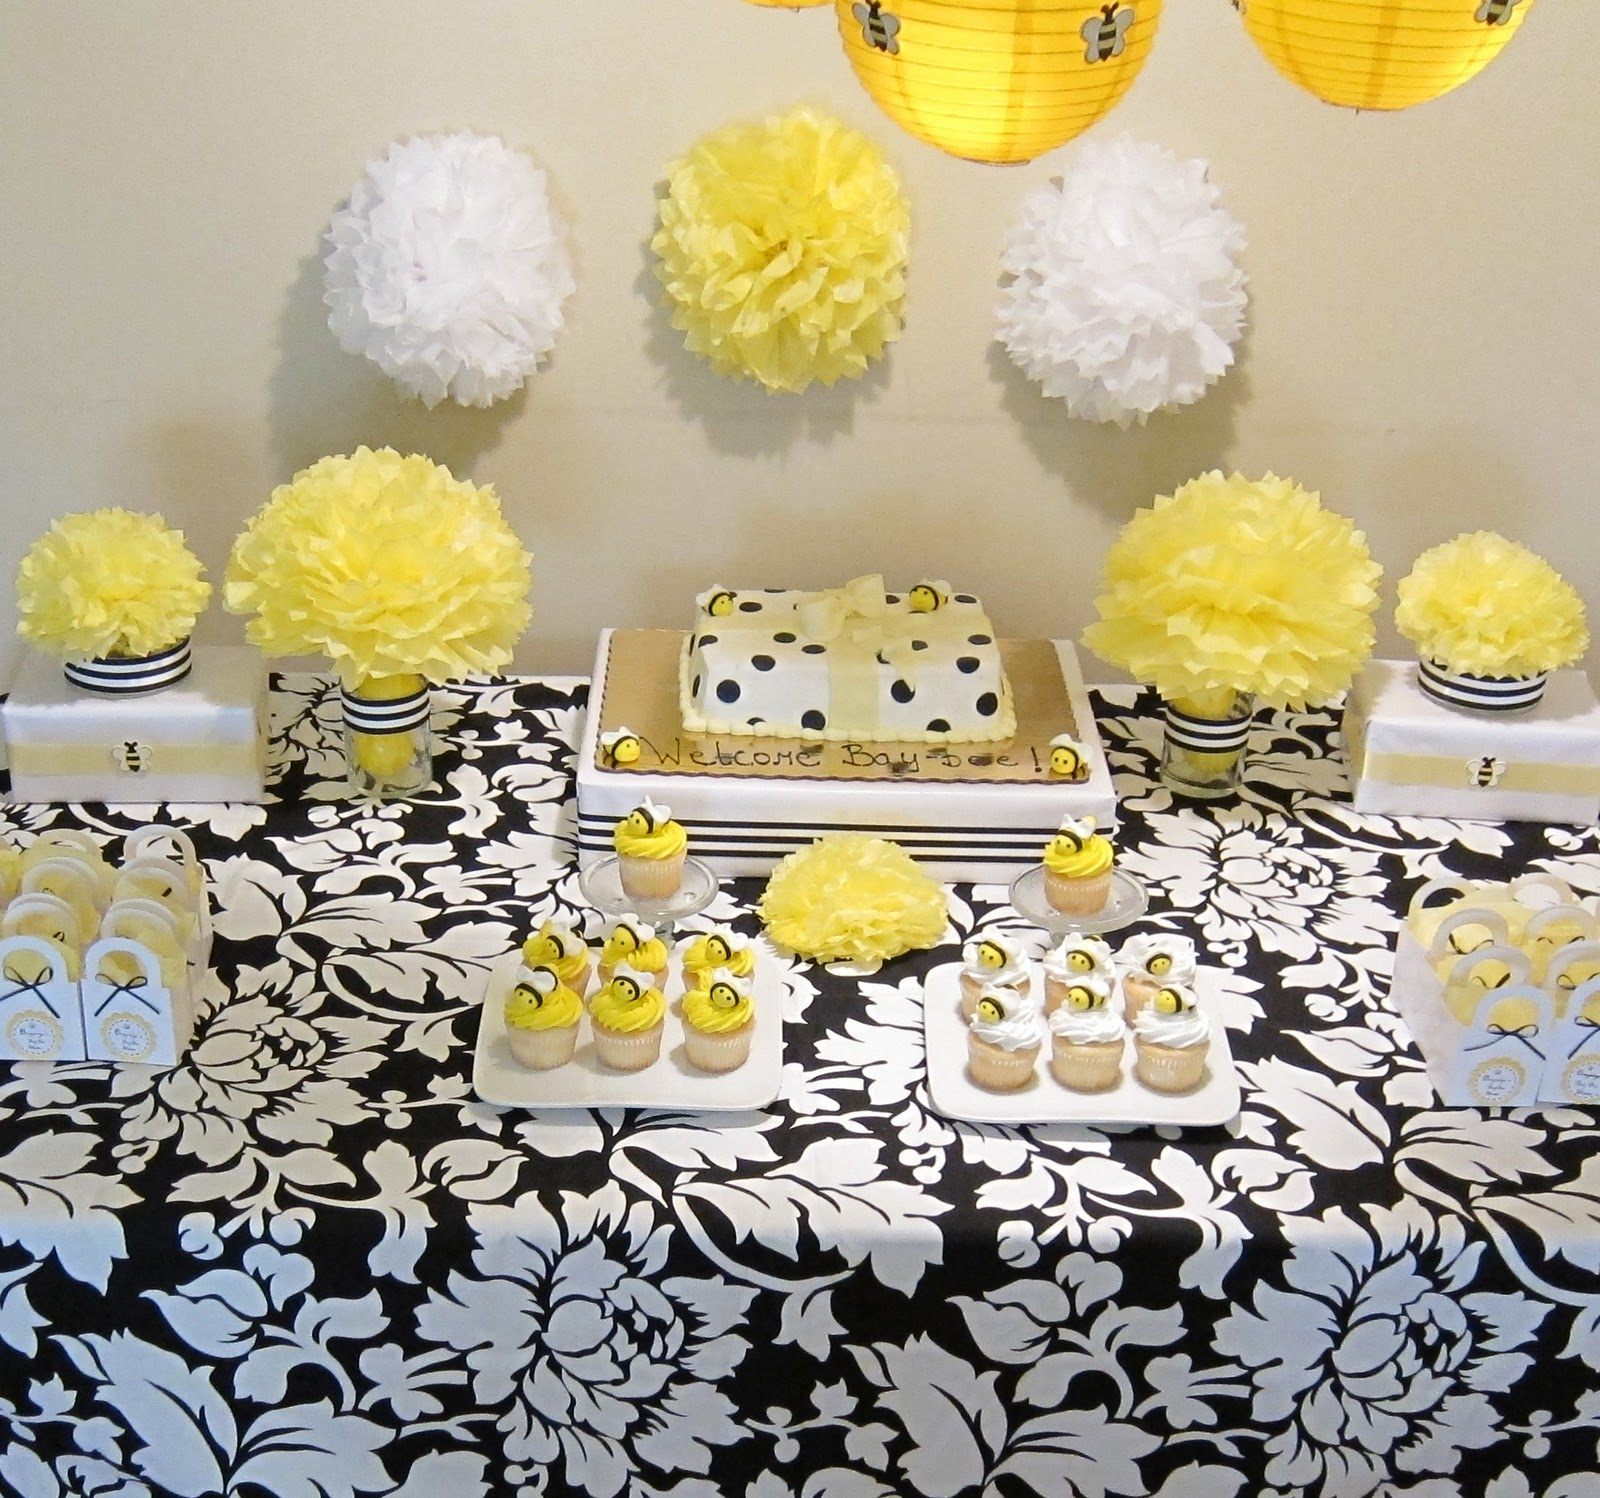 bumble bee baby shower ideas bumble bee baby shower